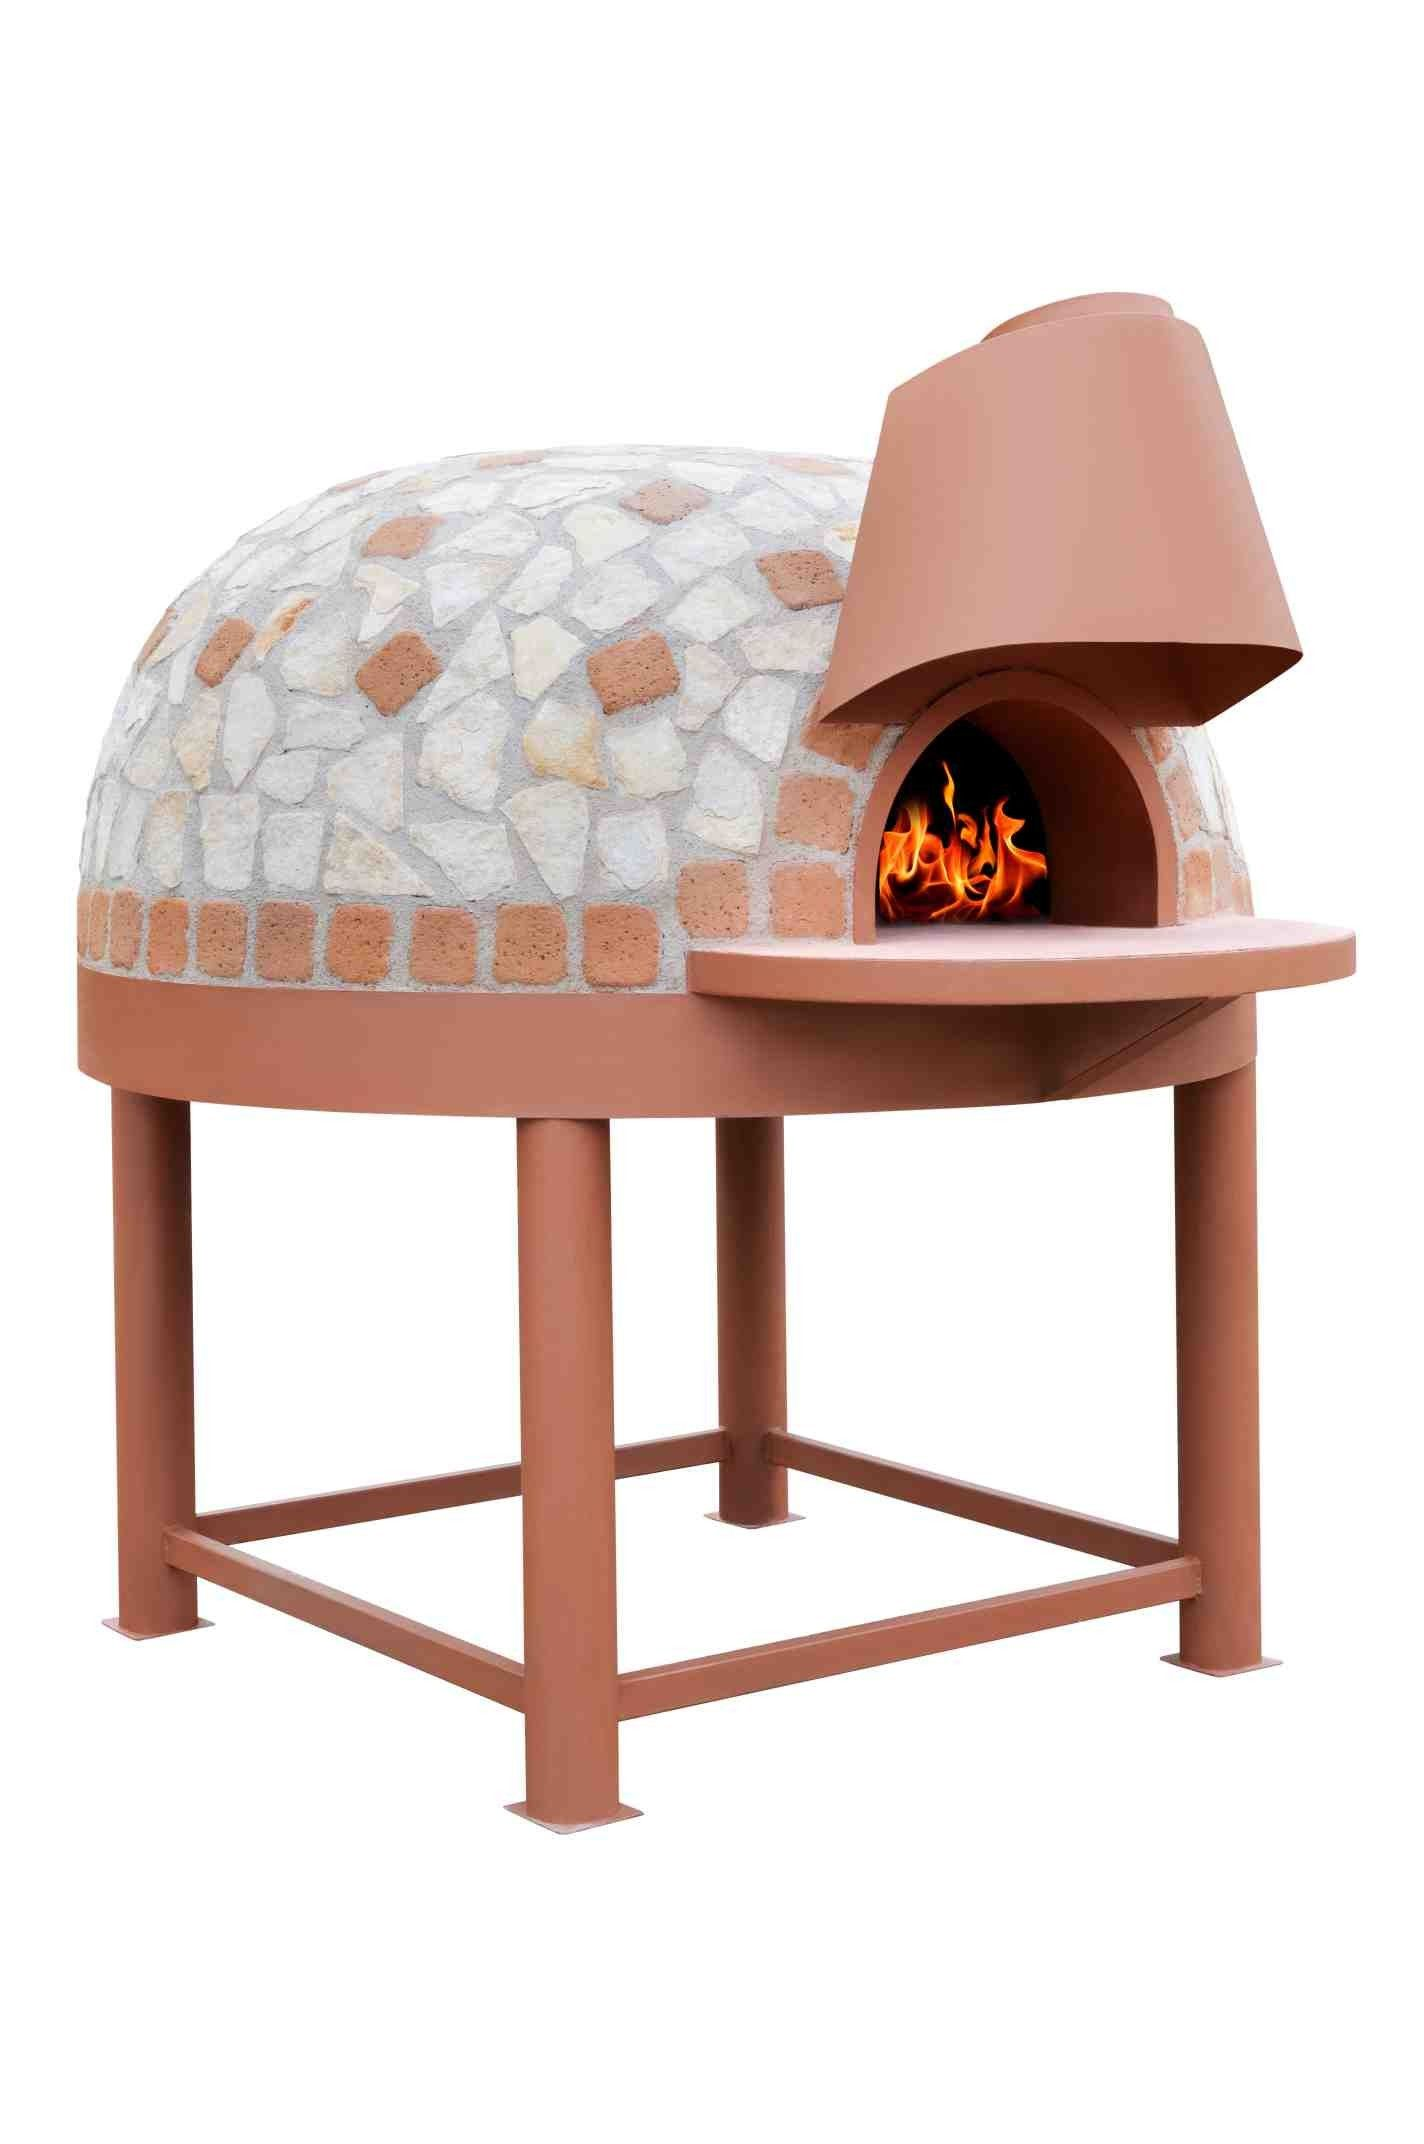 Mediterranean wood fired pizza oven - Wood Fired Pizza Oven Ceramic Tiles Mosaic Steel Storage For Wood